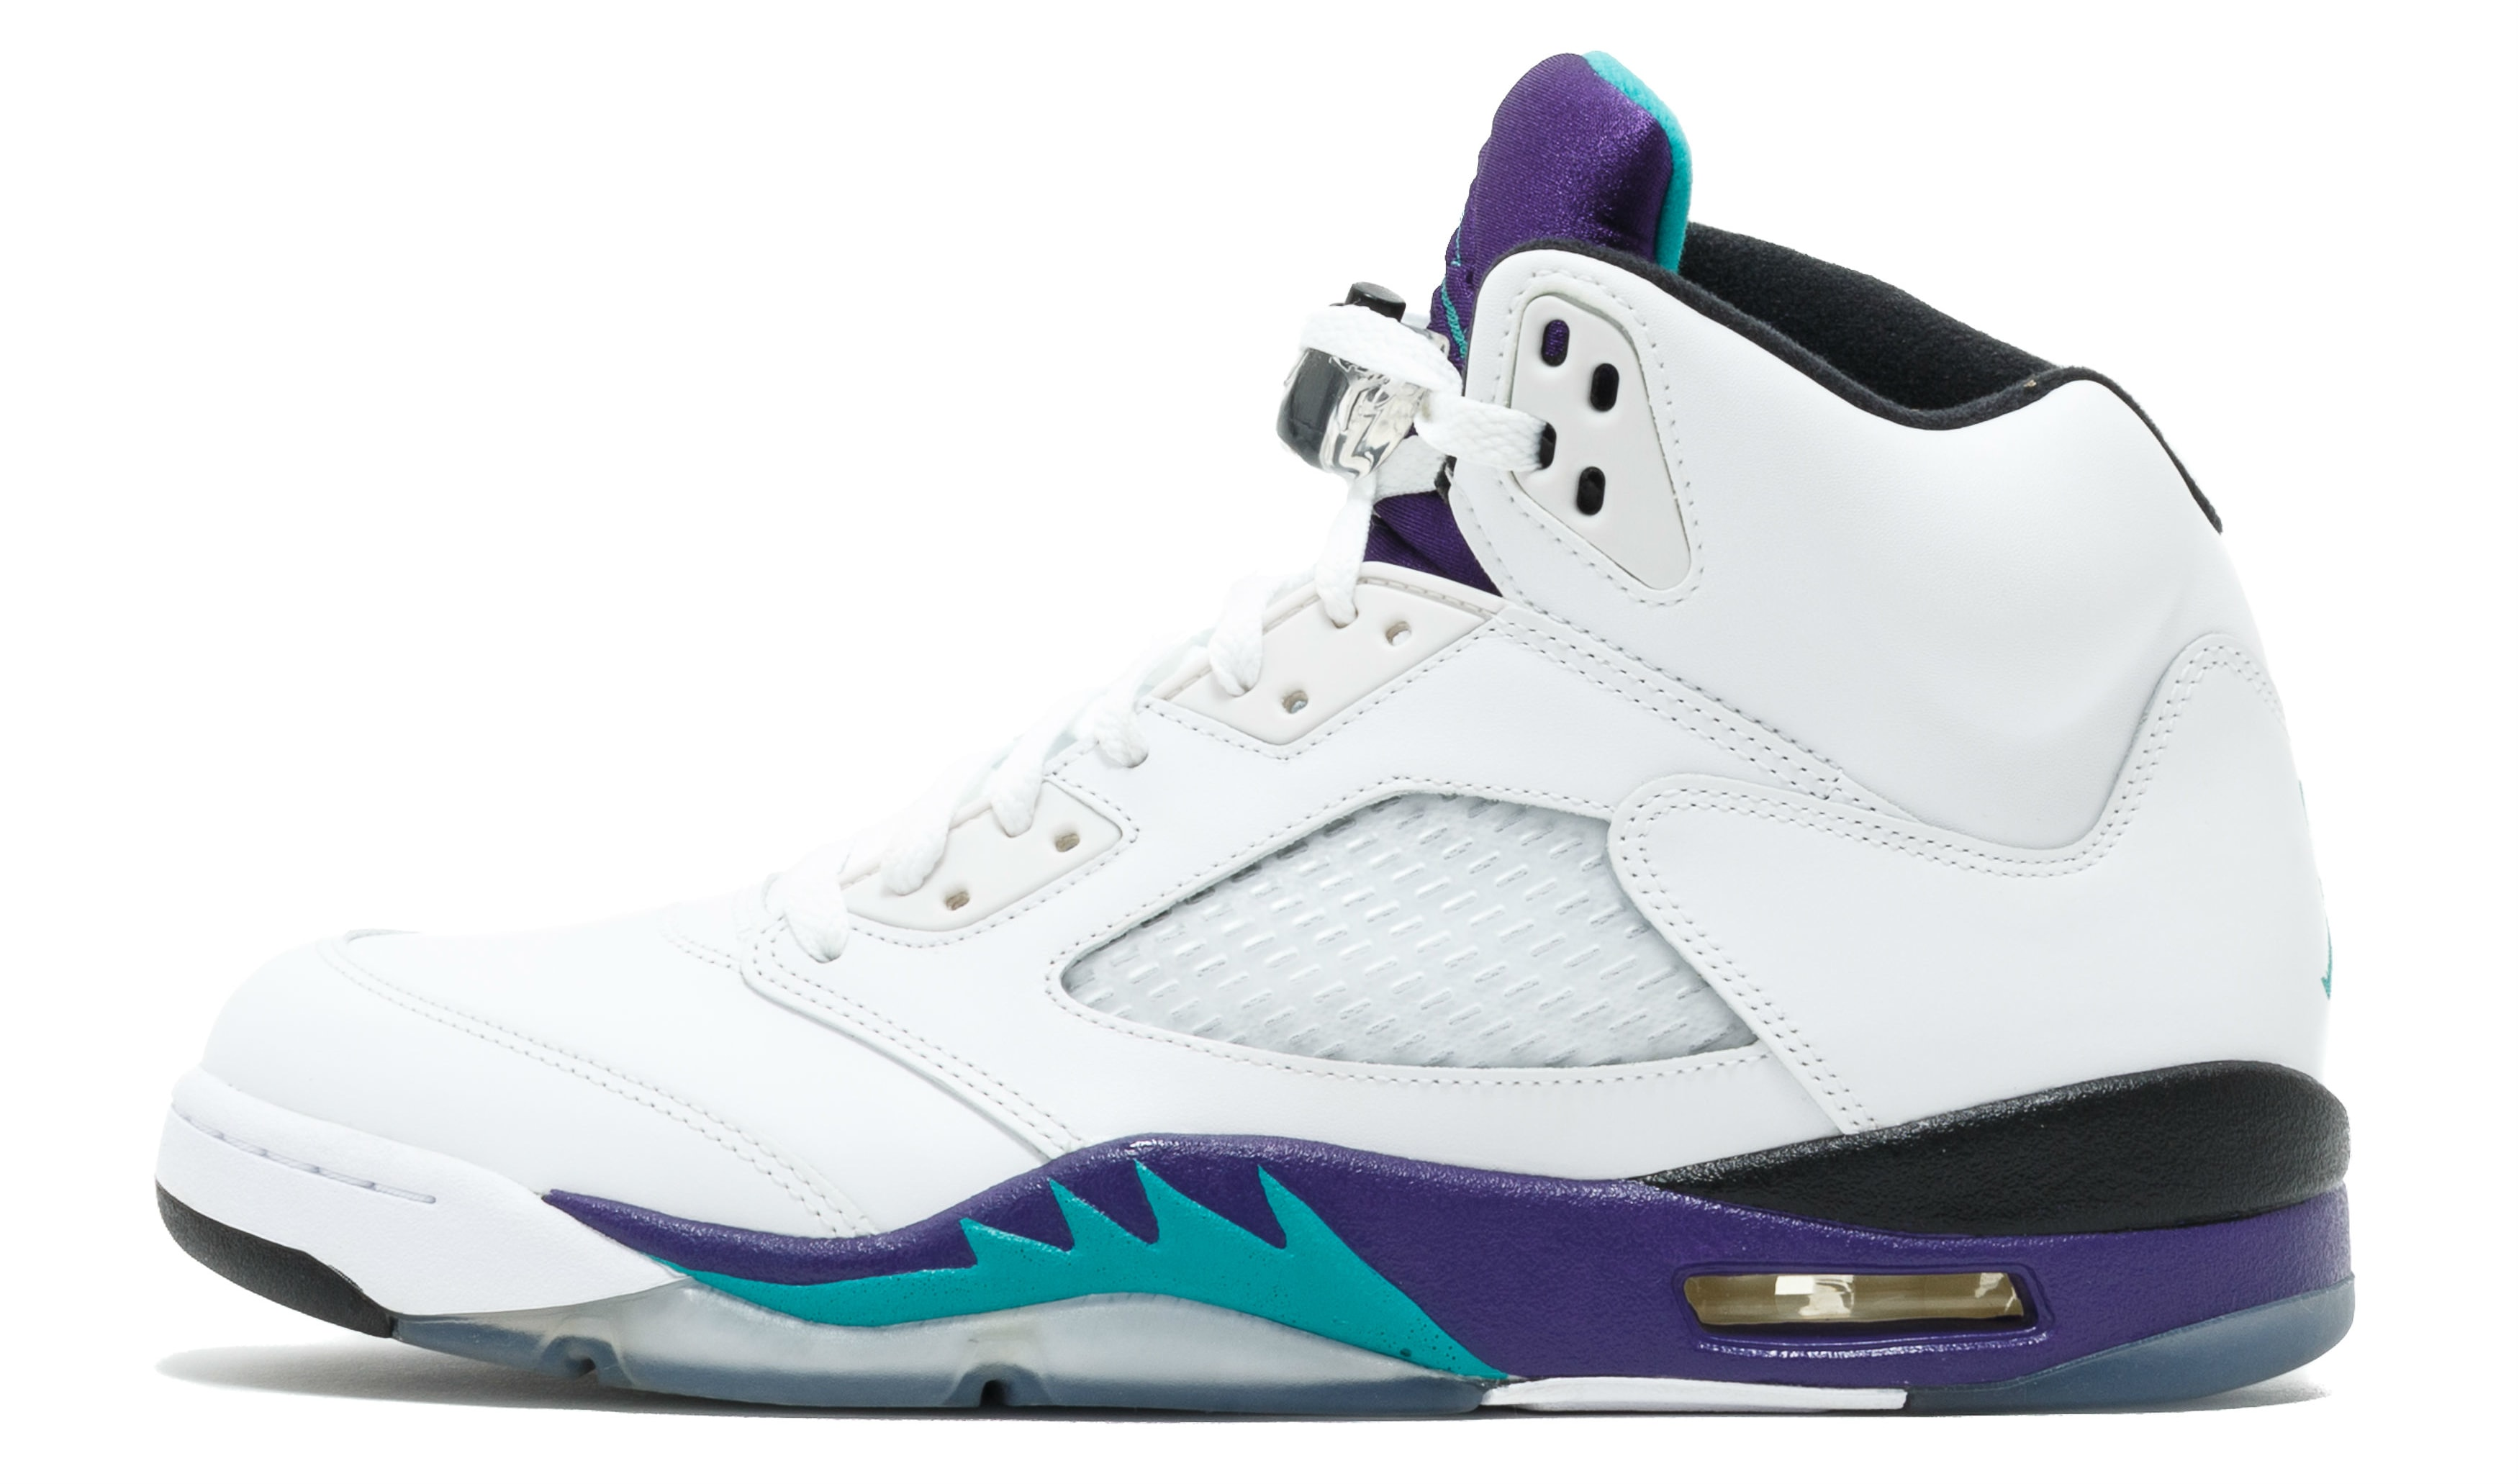 9f59ea190818 One of the most beloved non-Bulls Air Jordan colorways is coming back with  in limited-edition fashion